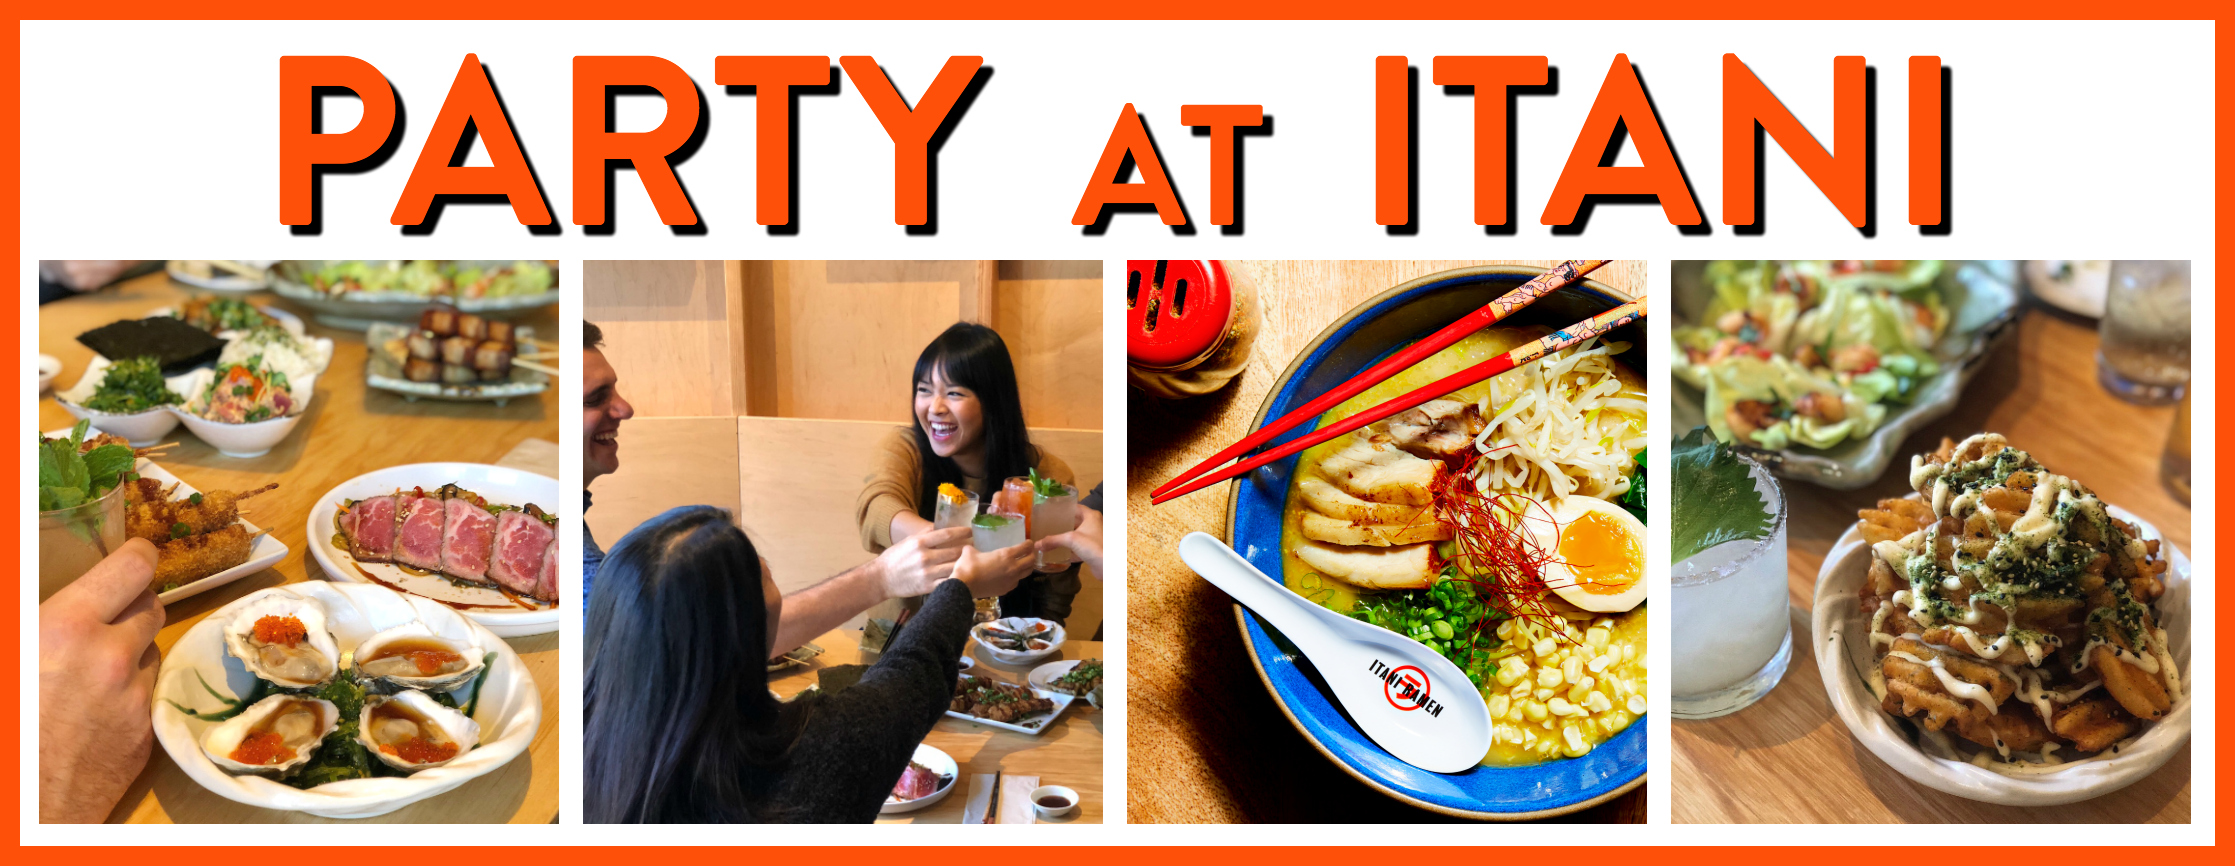 party at itani_new photo banner.jpg